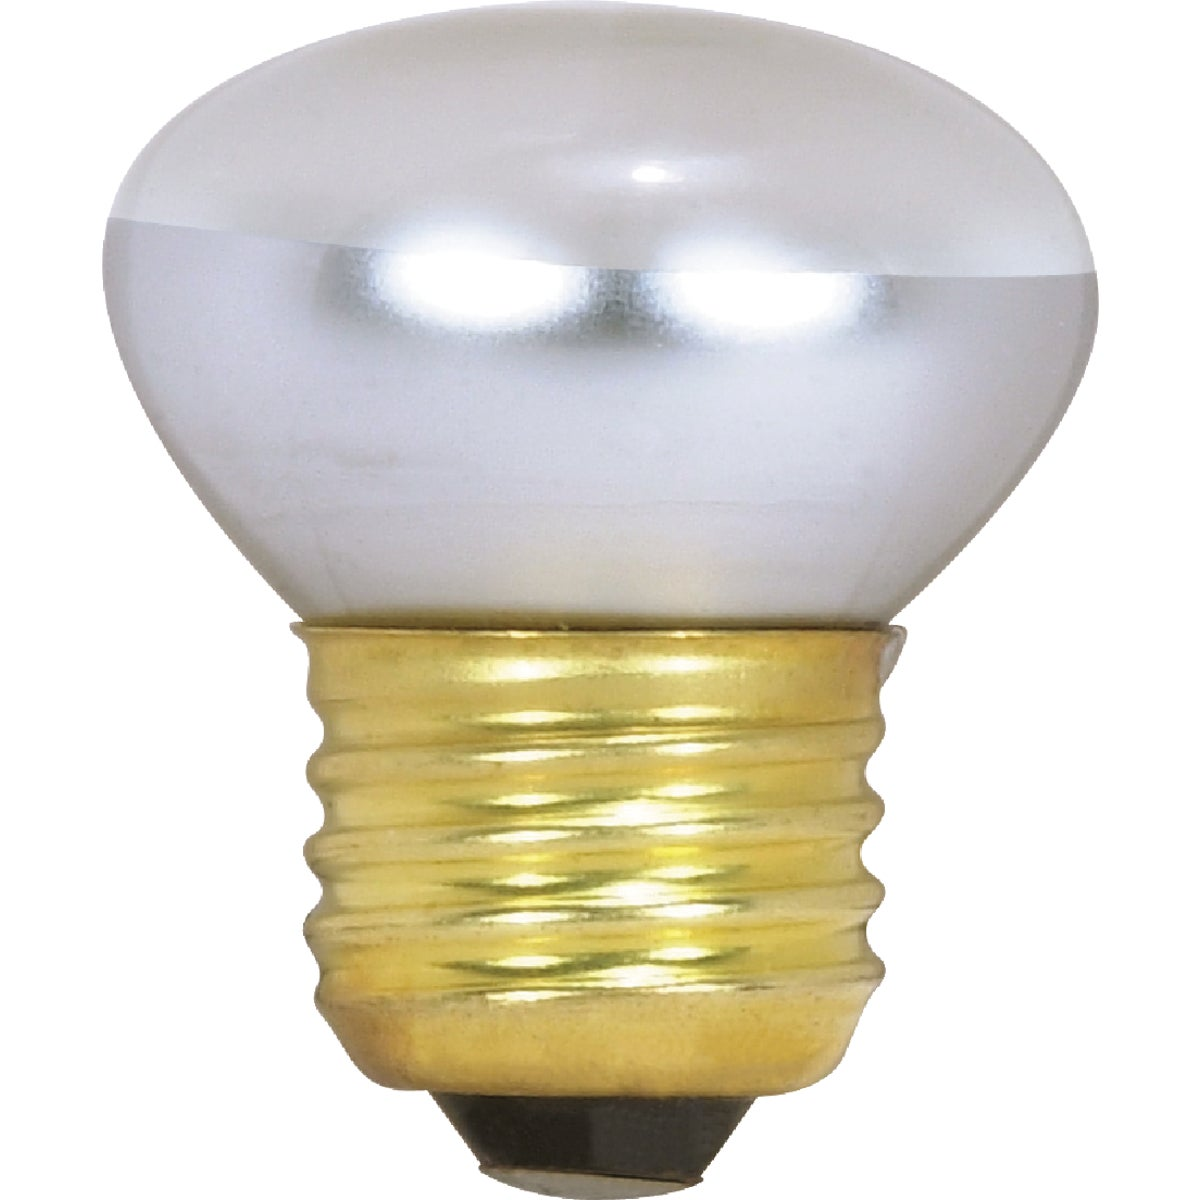 25W MED REFLECTOR BULB - 03623 by Westinghouse Lightng